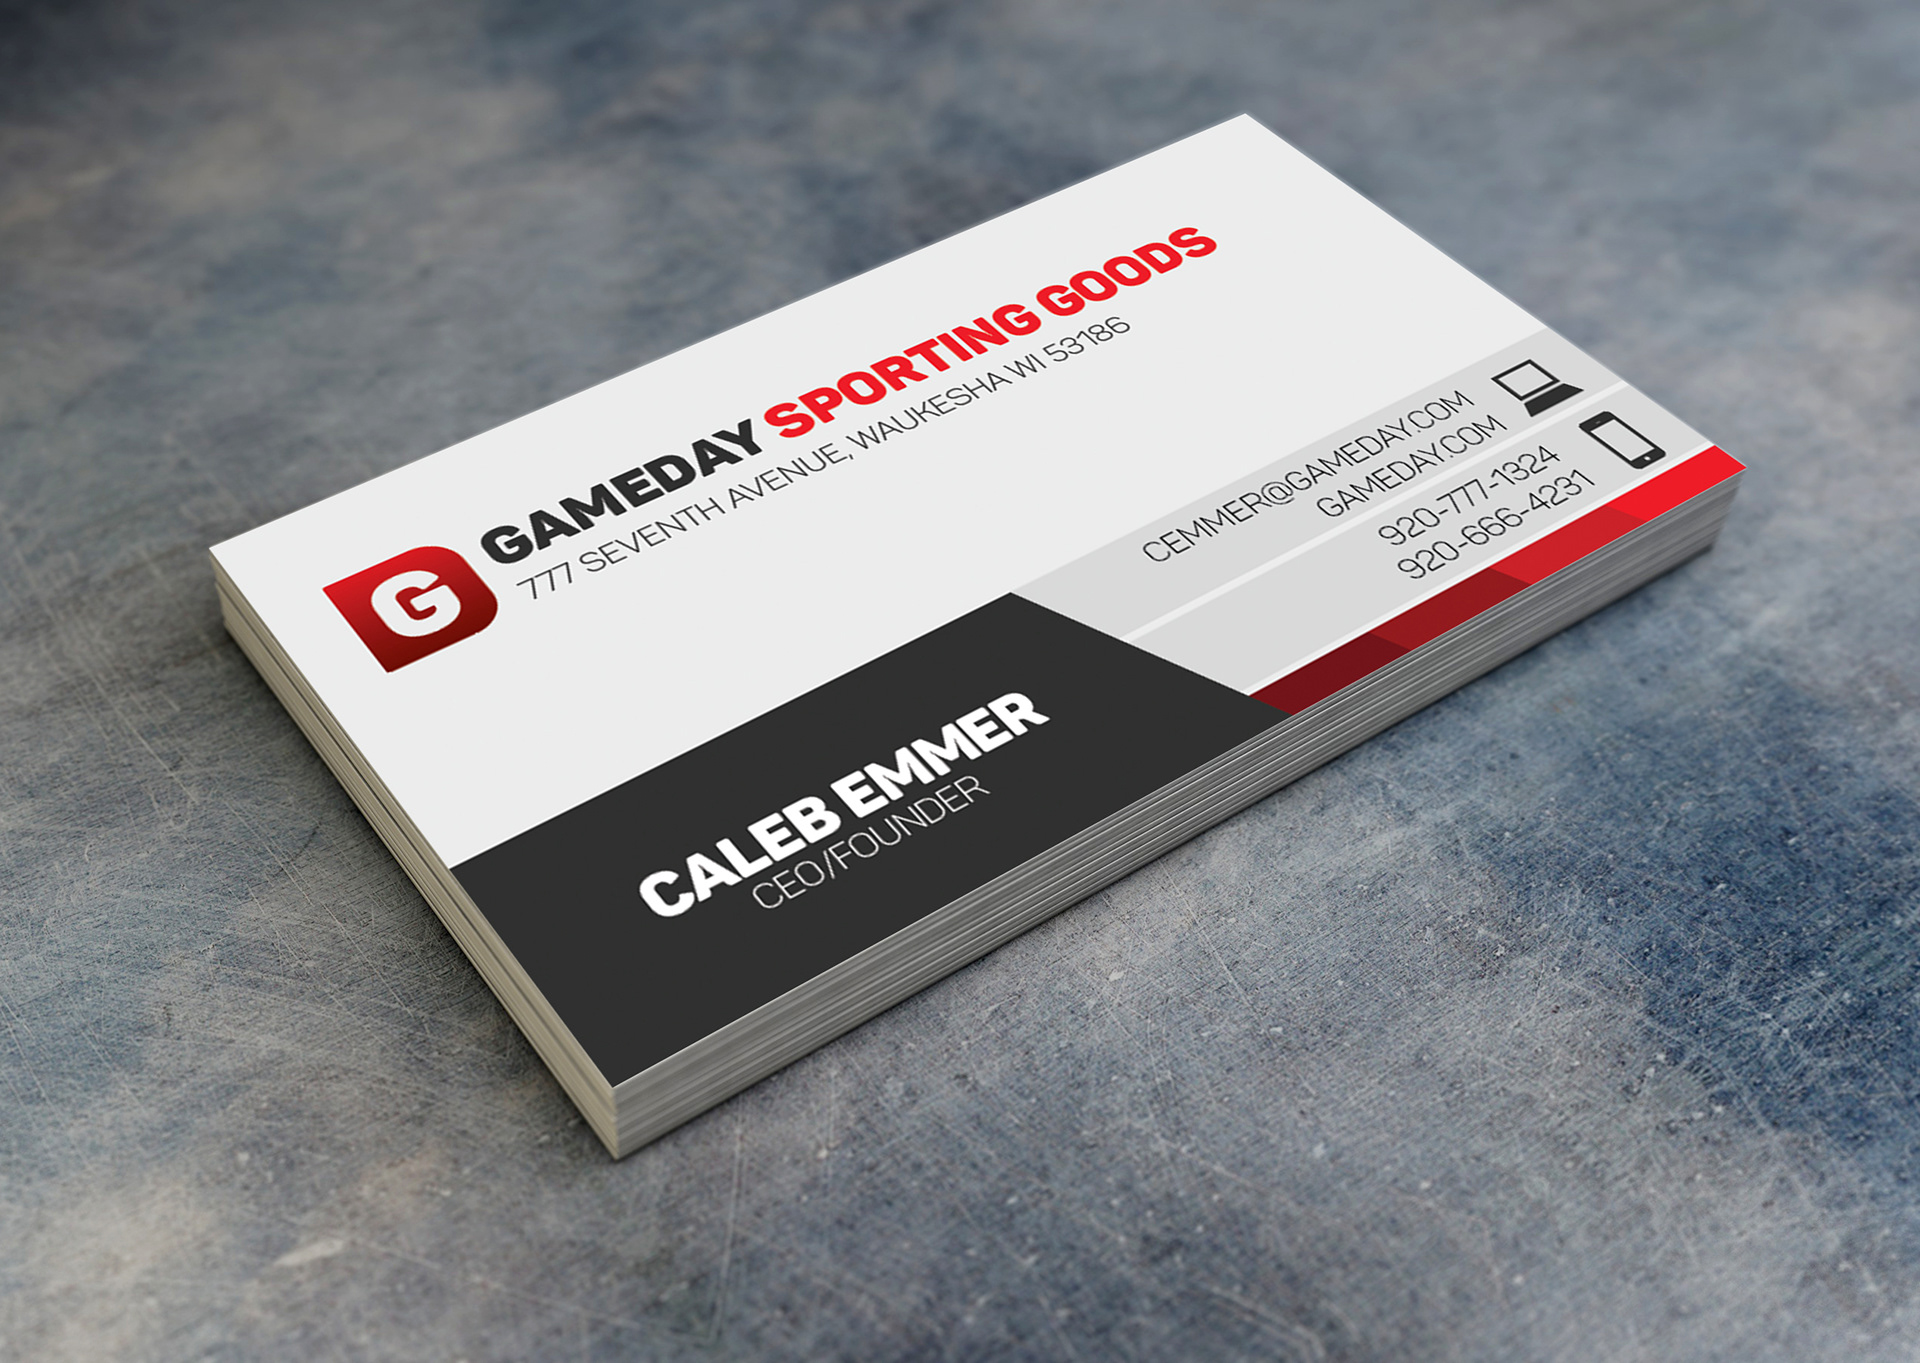 Caleb emmer business card for the company ceo it includes a straightforward red and grayscale color theme the logo i created resembles a g cut out of a d magicingreecefo Choice Image